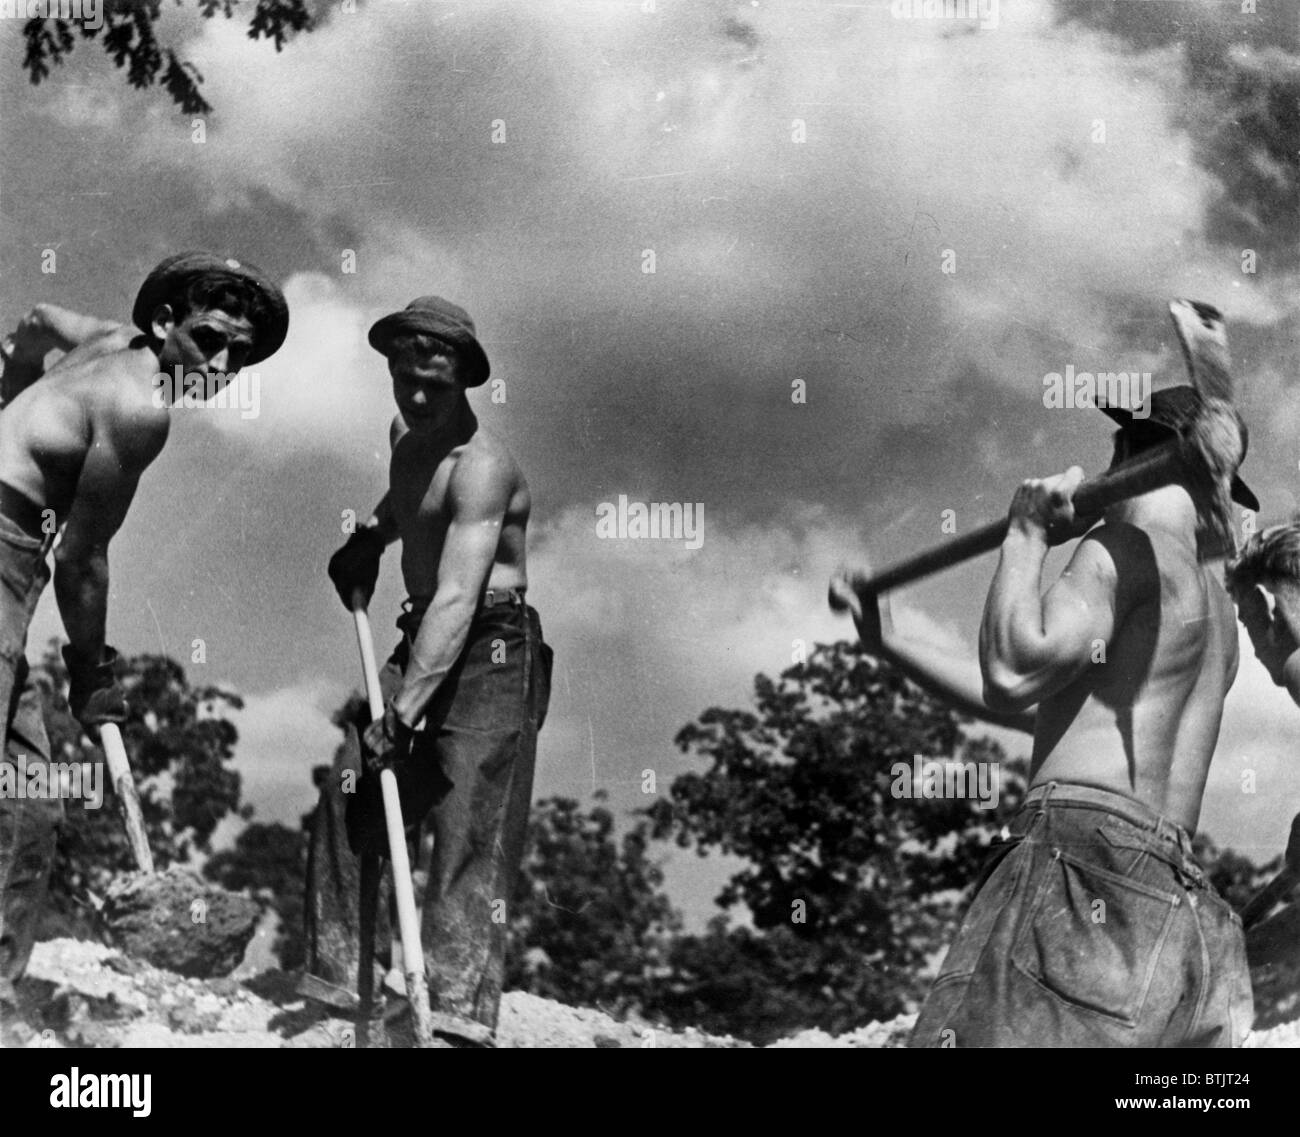 Civilian Conservation Corps boys at work, United States Resettlement Administration, photograph by Carl Mydans, - Stock Image